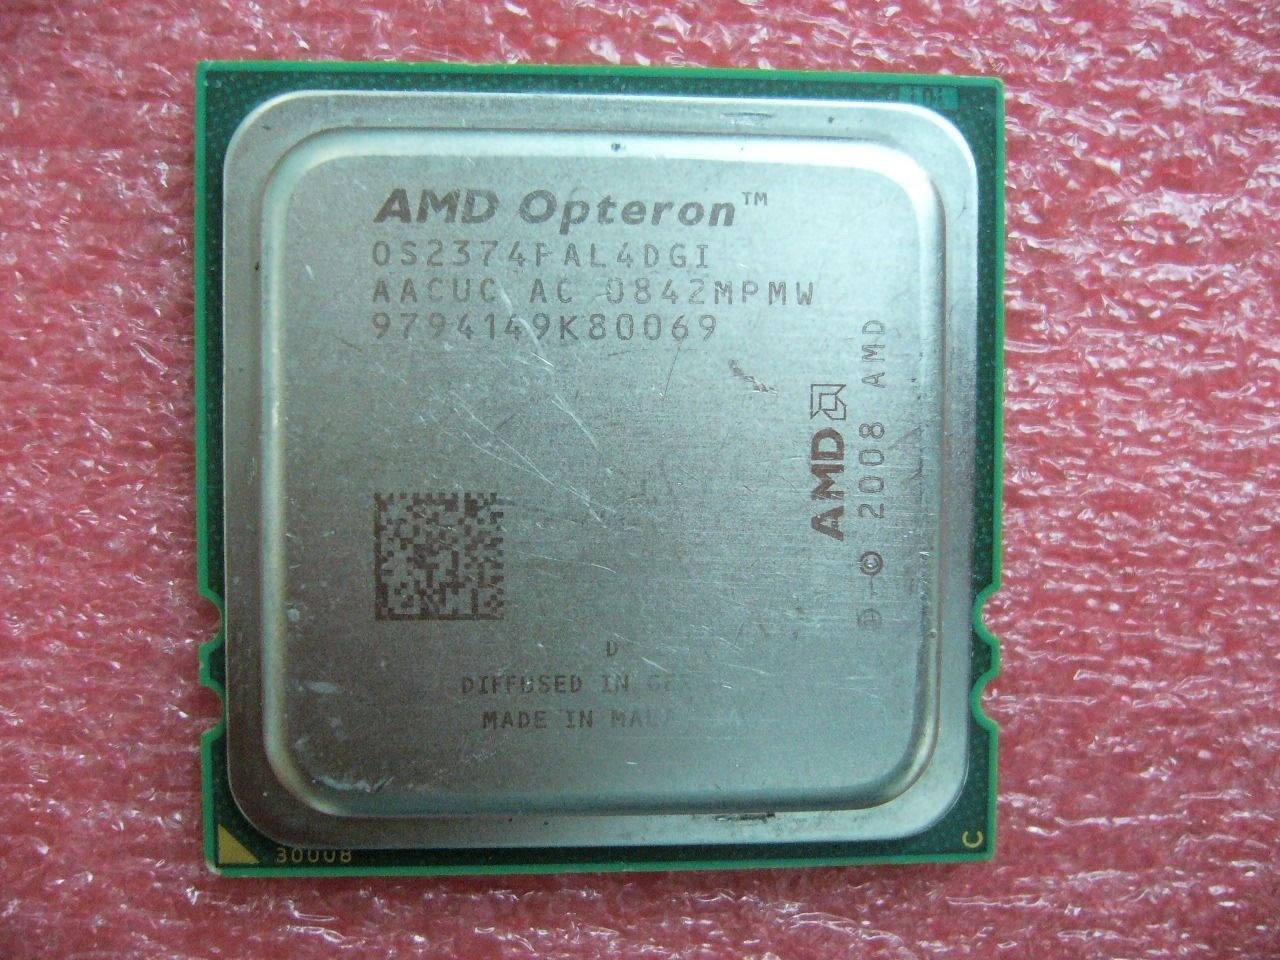 QTY 1x AMD Opteron 2374 HE 2.2 GHz Quad-Core OS2374PAL4DGI CPU Socket F 1207